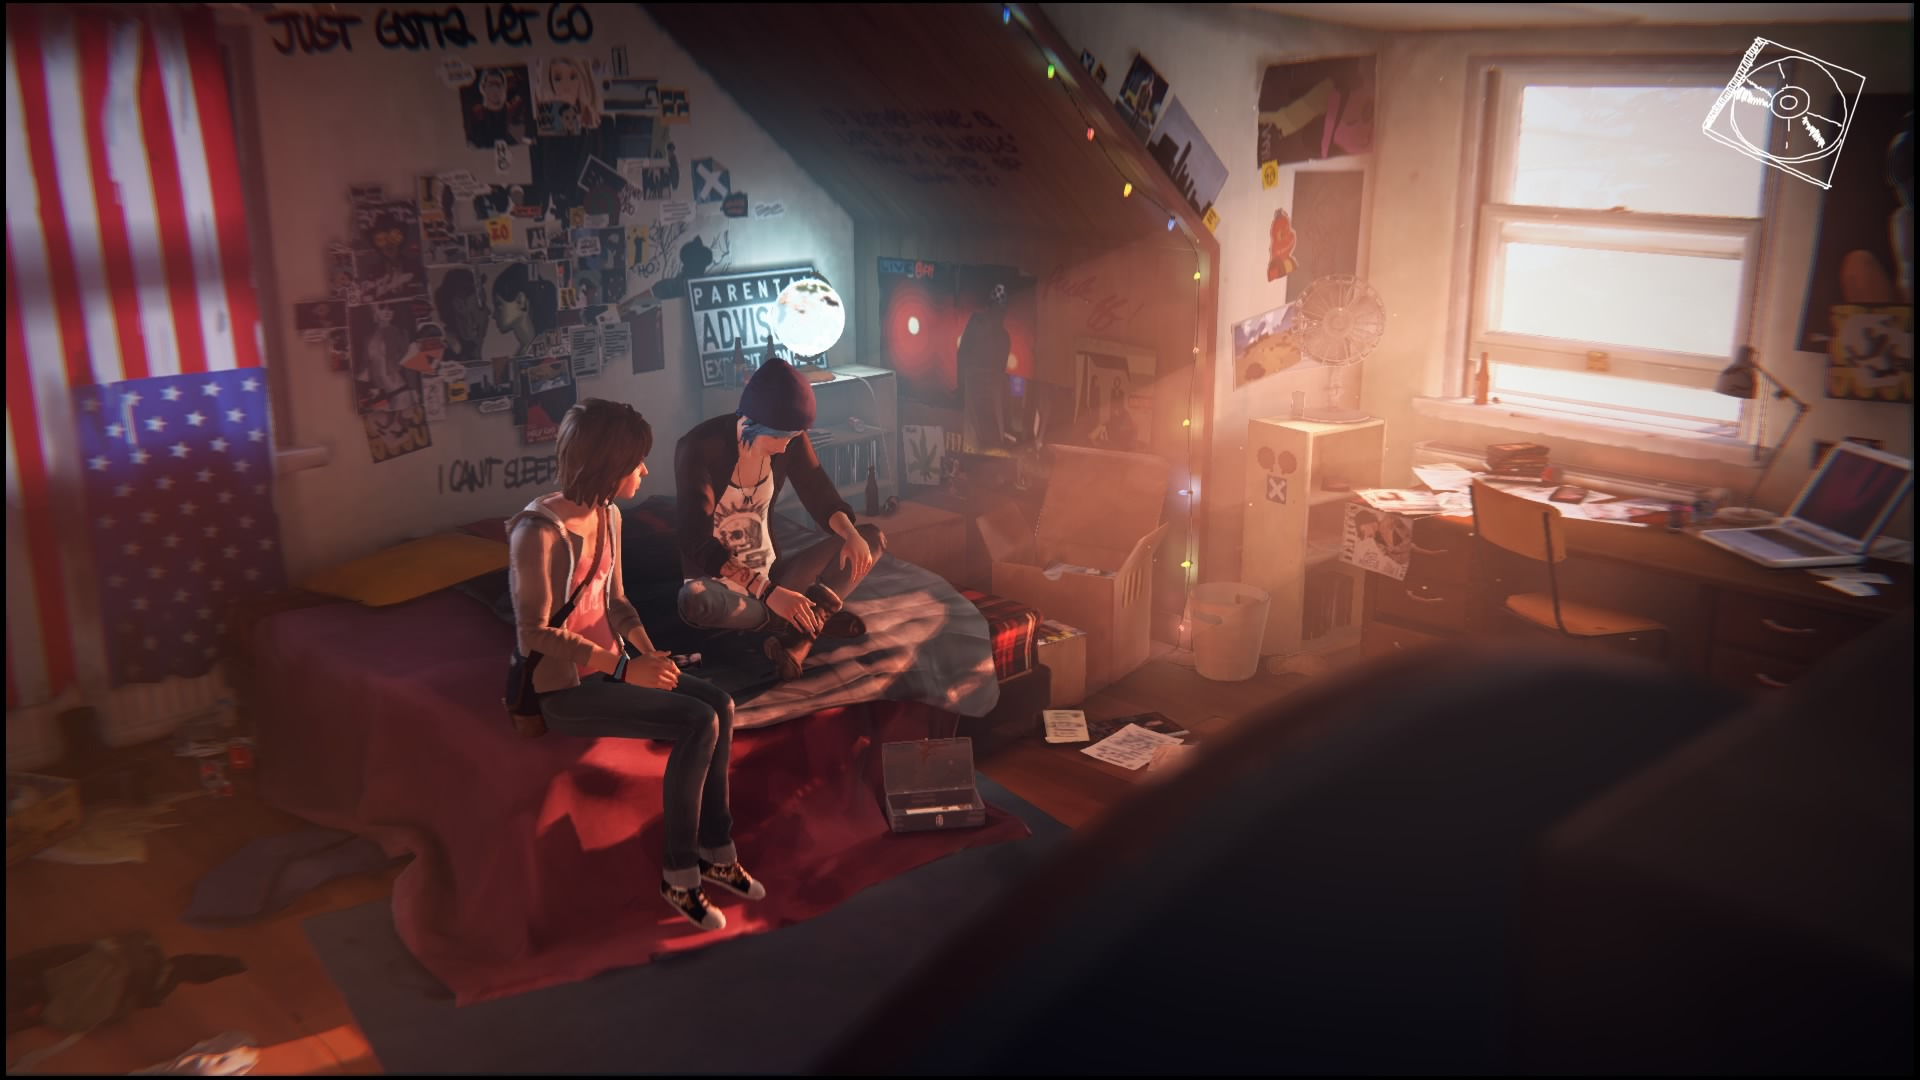 In Chloe's room, Max and Chloe sit together.